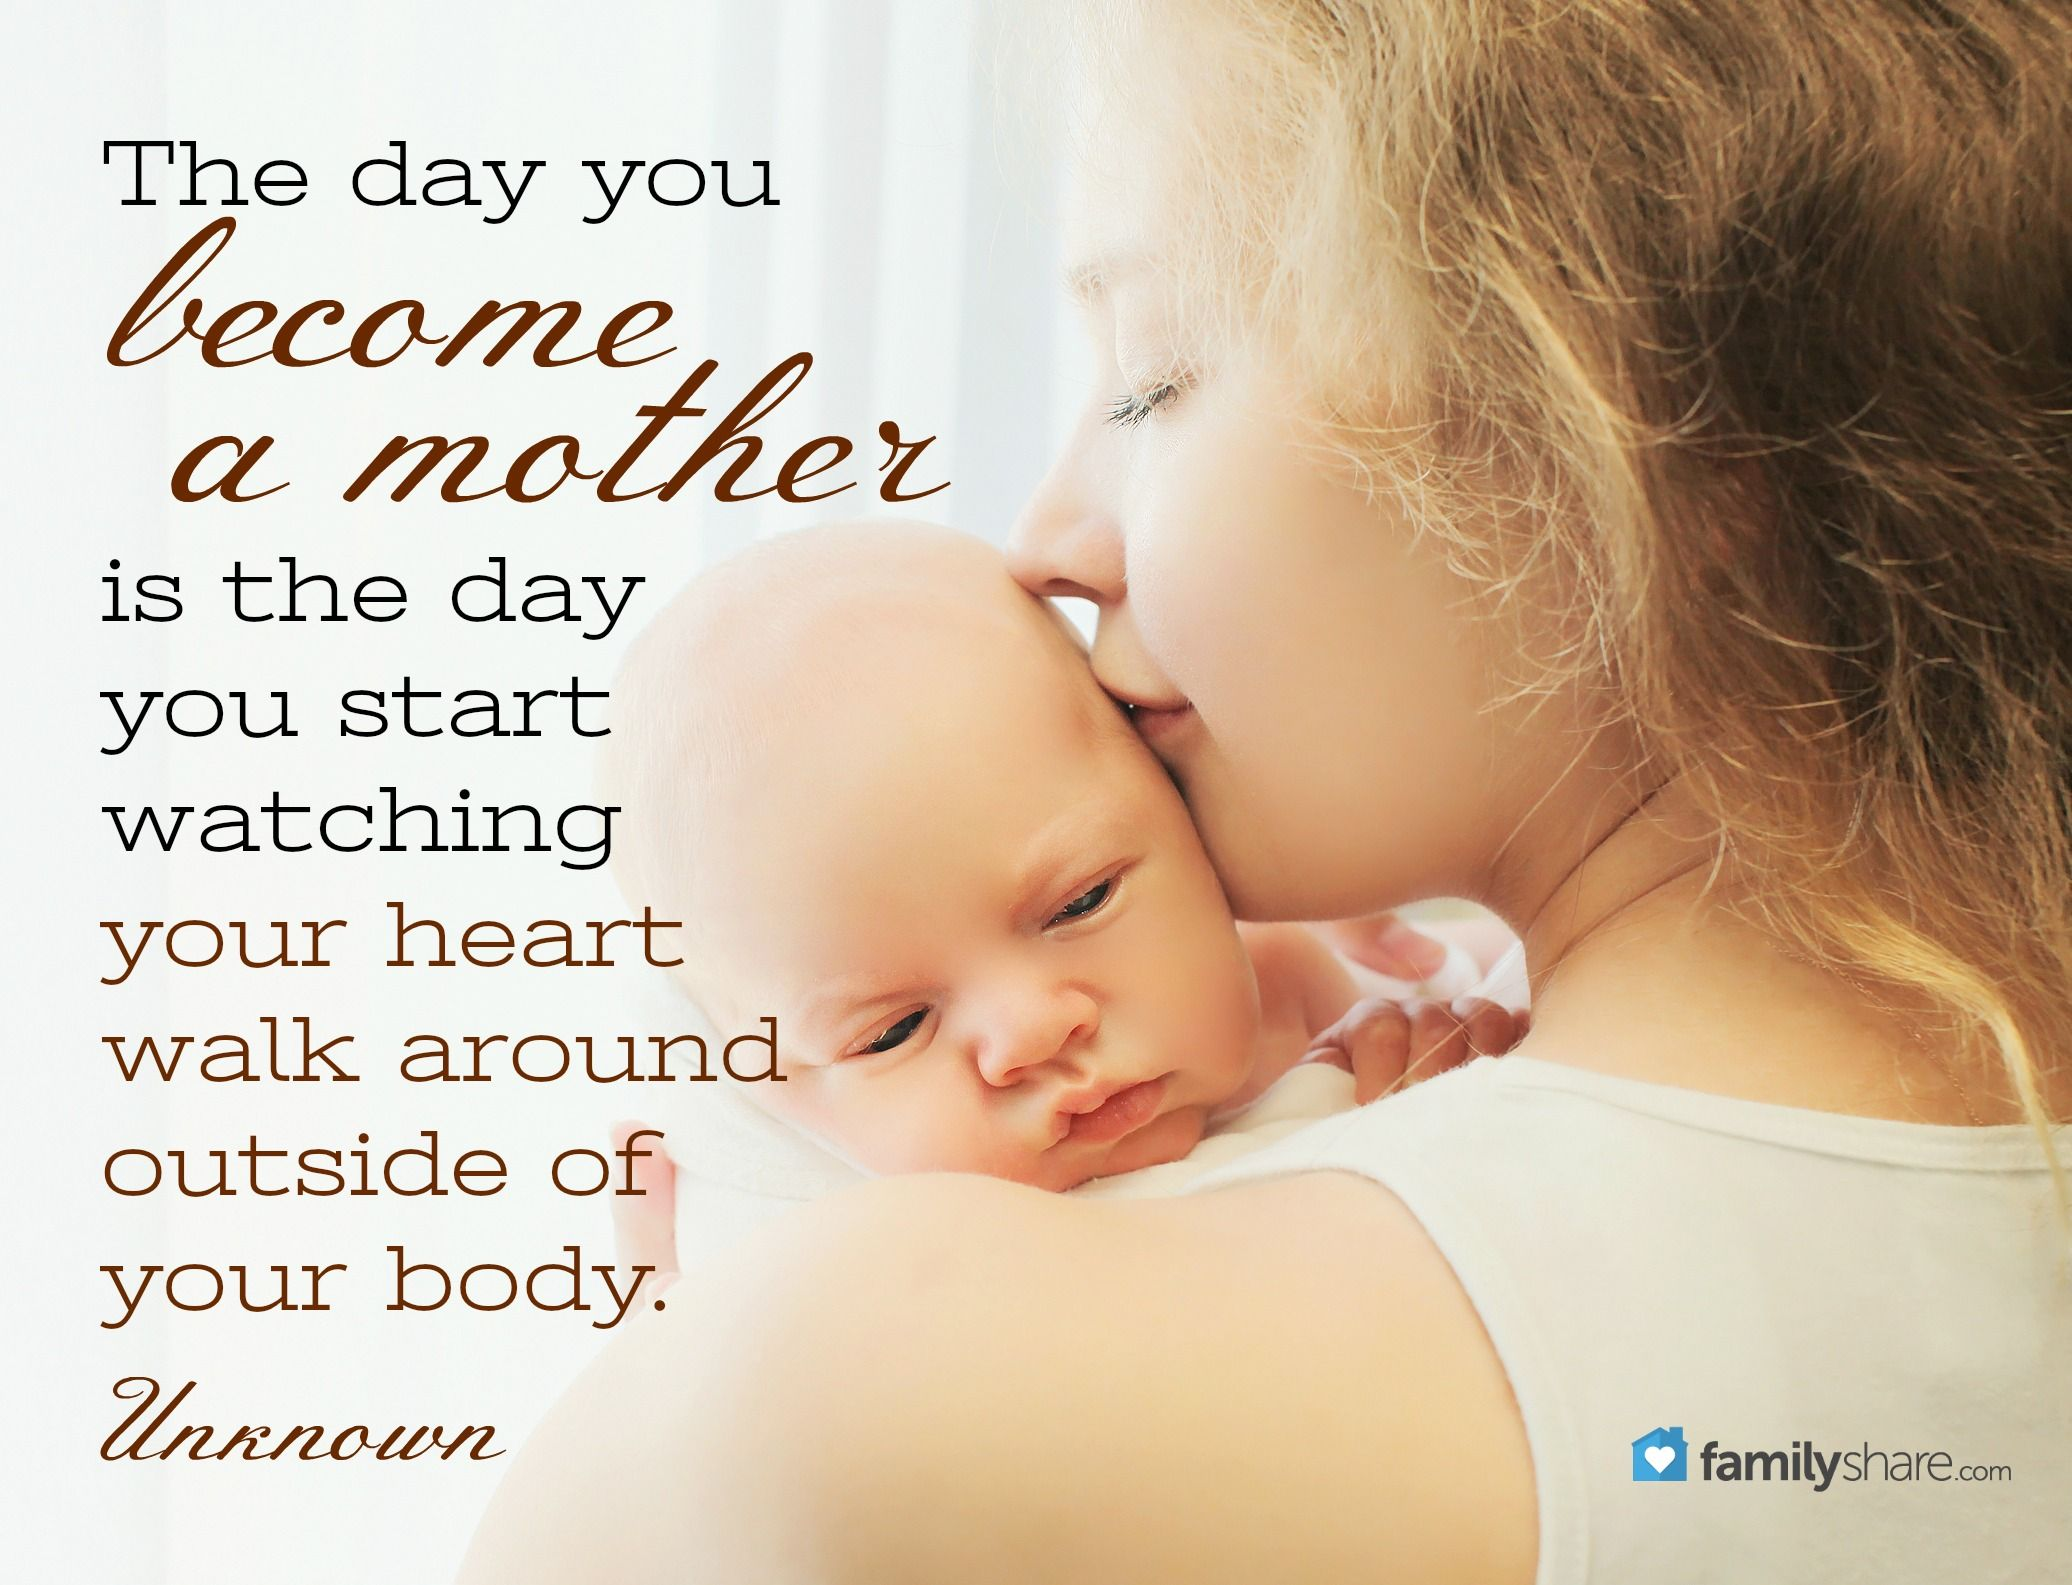 The Day You Become A Mother Is The Day You Start Watching Your